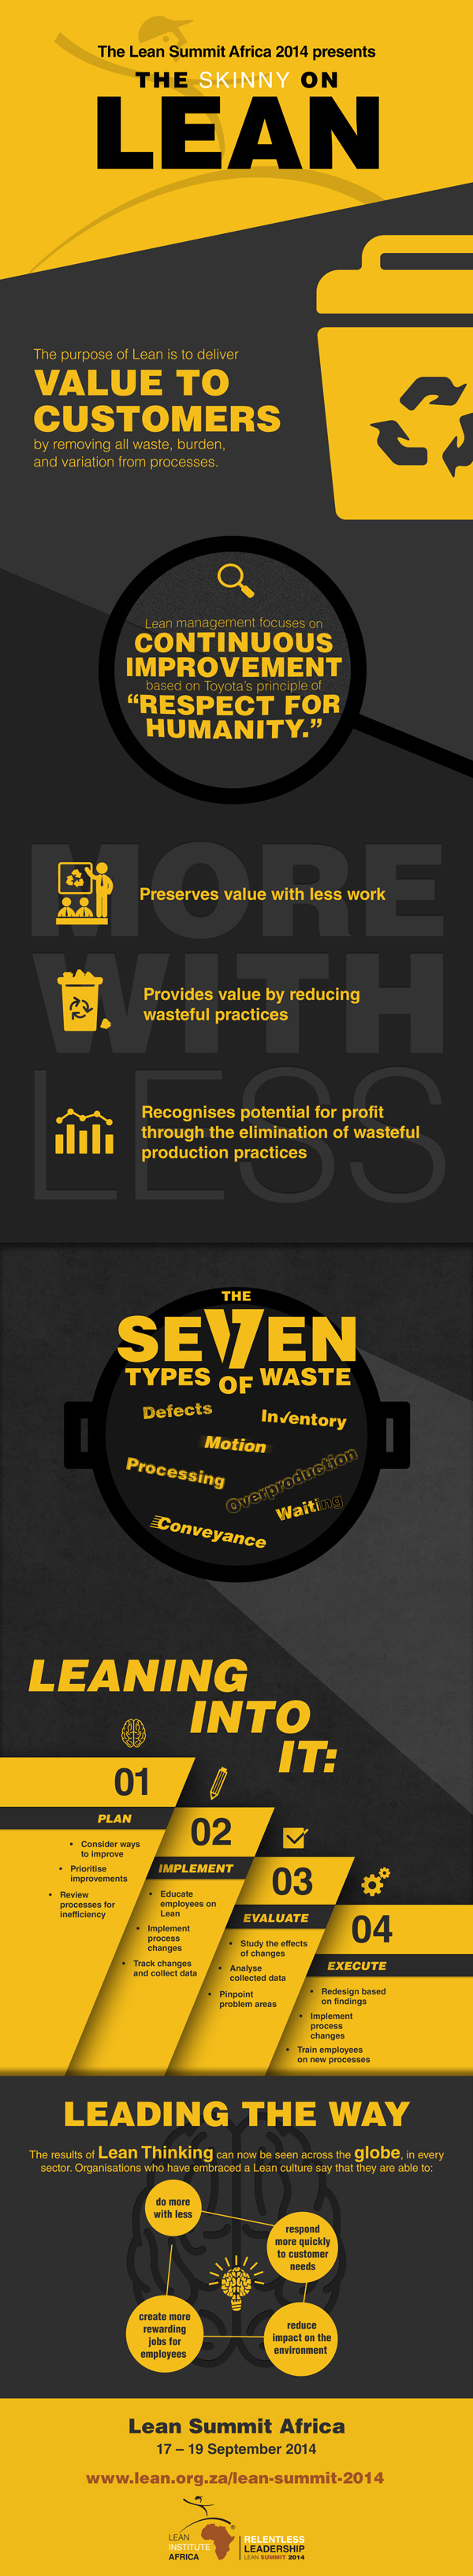 GSBL-014-Lean-Infographic-Full-2